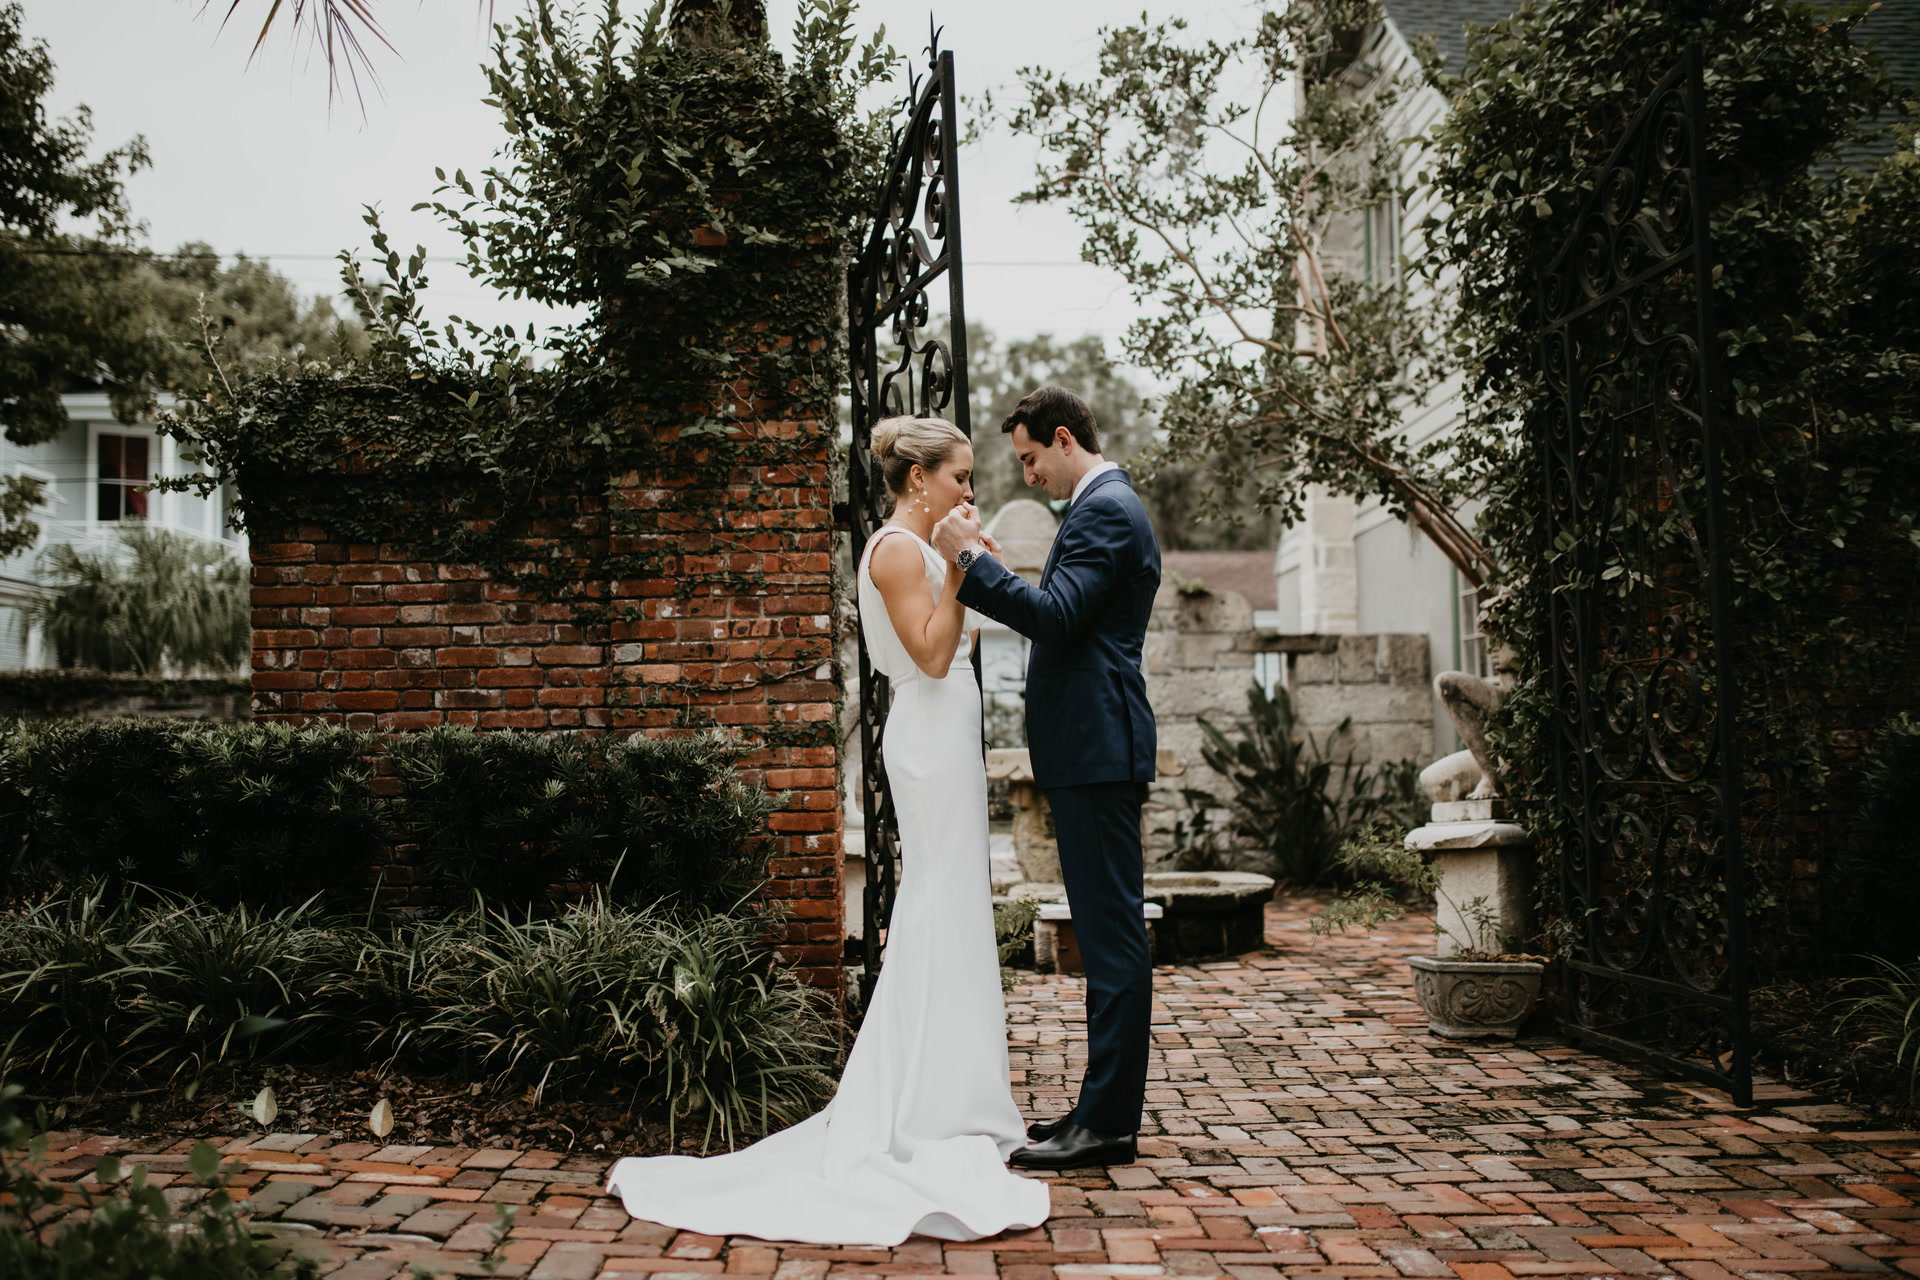 Katherine + Maxim | St. Augustine, Florida | The White Room